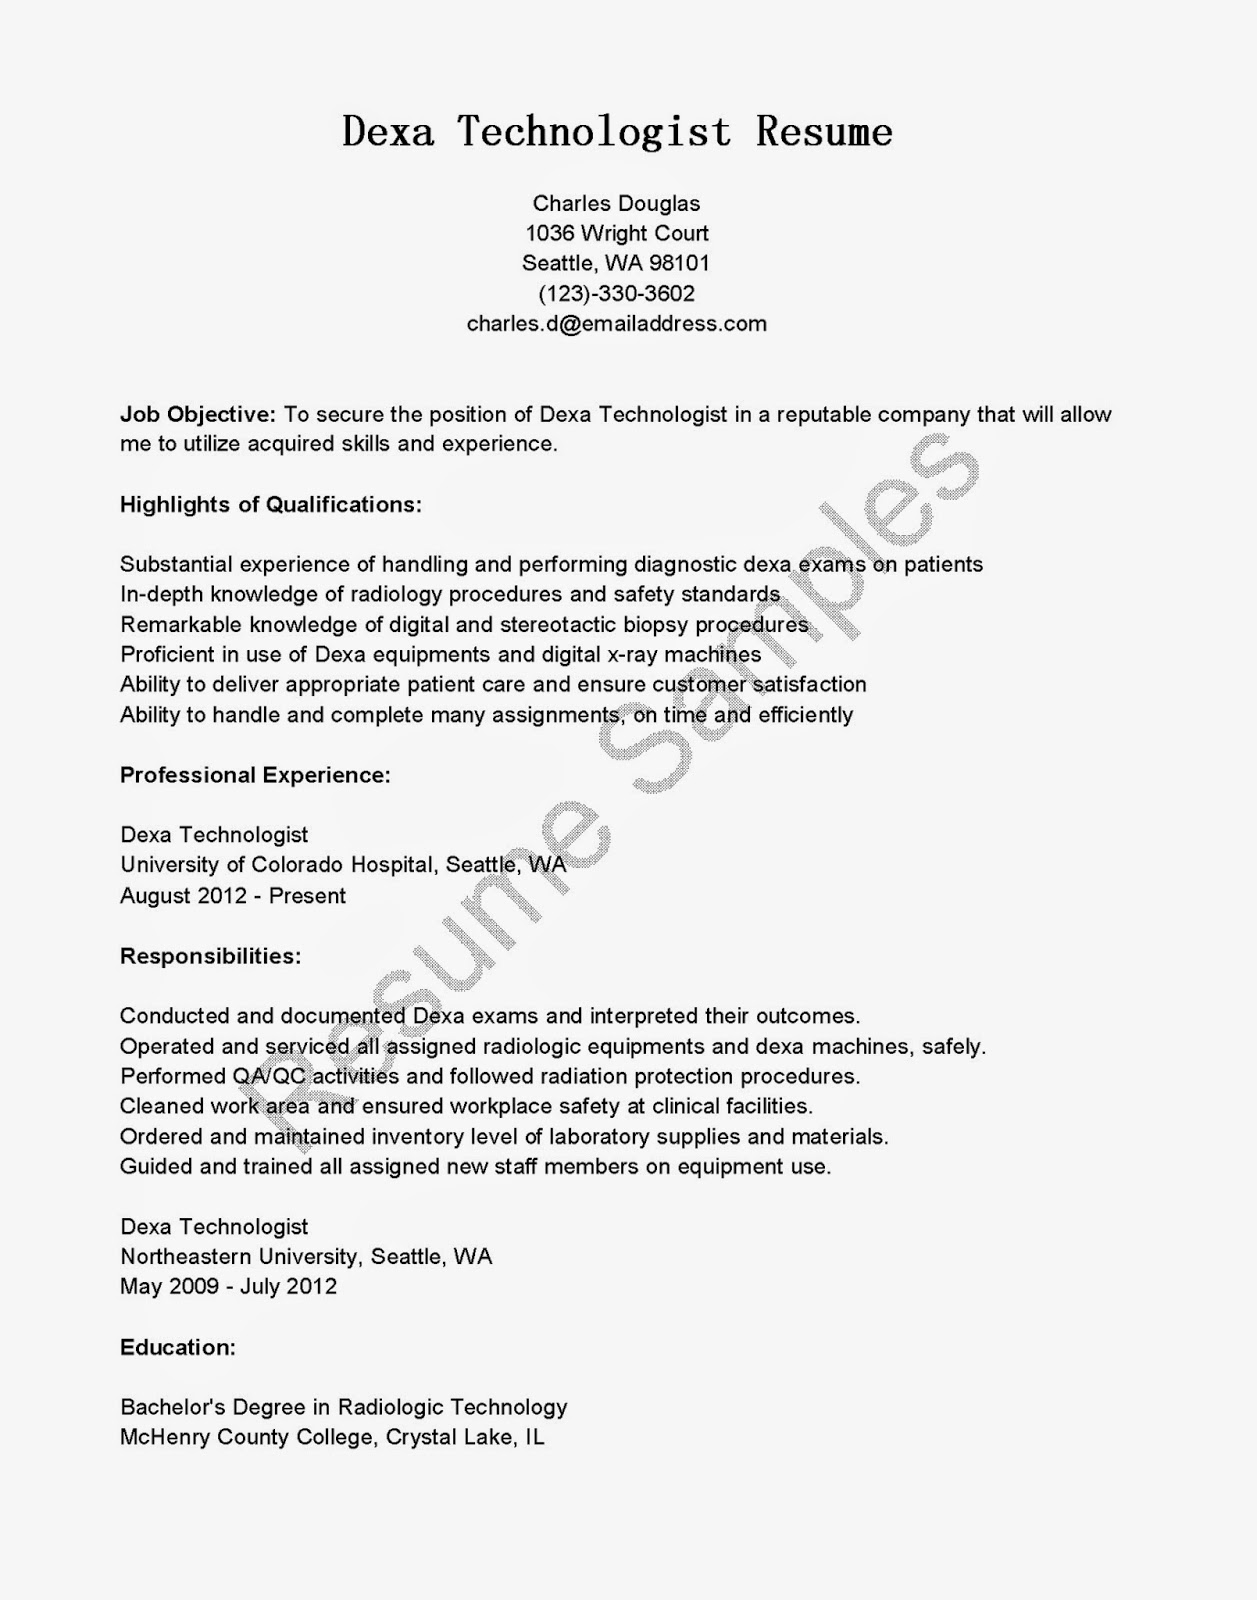 Radiology Technician Resume 27.04.2017